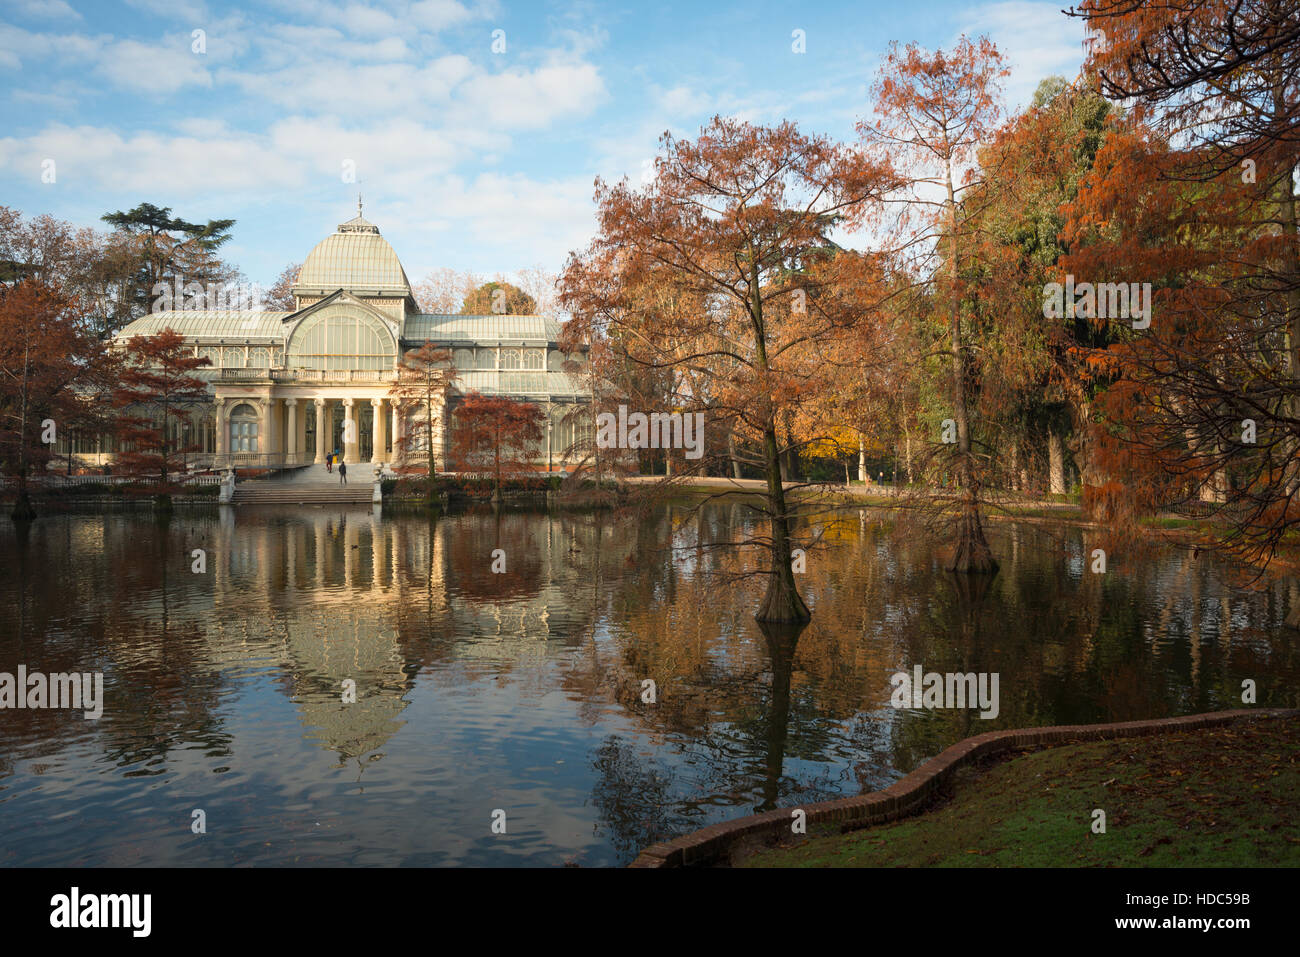 Crystal Palace im Buen Retiro Park in Madrid Spanien Stockbild